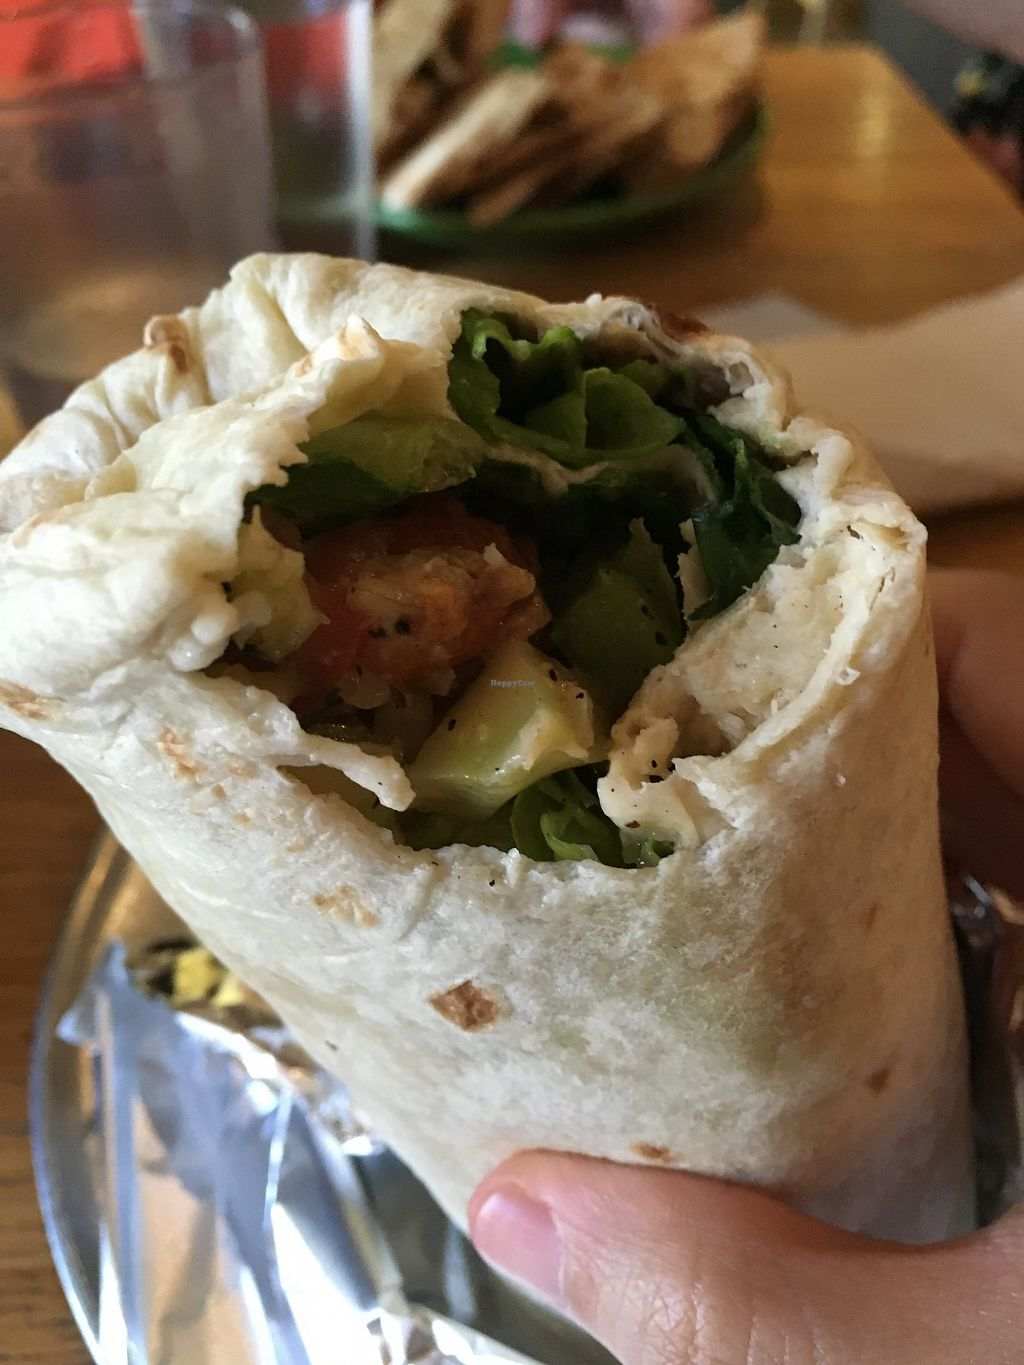 "Photo of Laughing Planet Cafe - Ecotrust  by <a href=""/members/profile/slo0go"">slo0go</a> <br/>Lentil burrito  <br/> March 23, 2018  - <a href='/contact/abuse/image/18927/374639'>Report</a>"